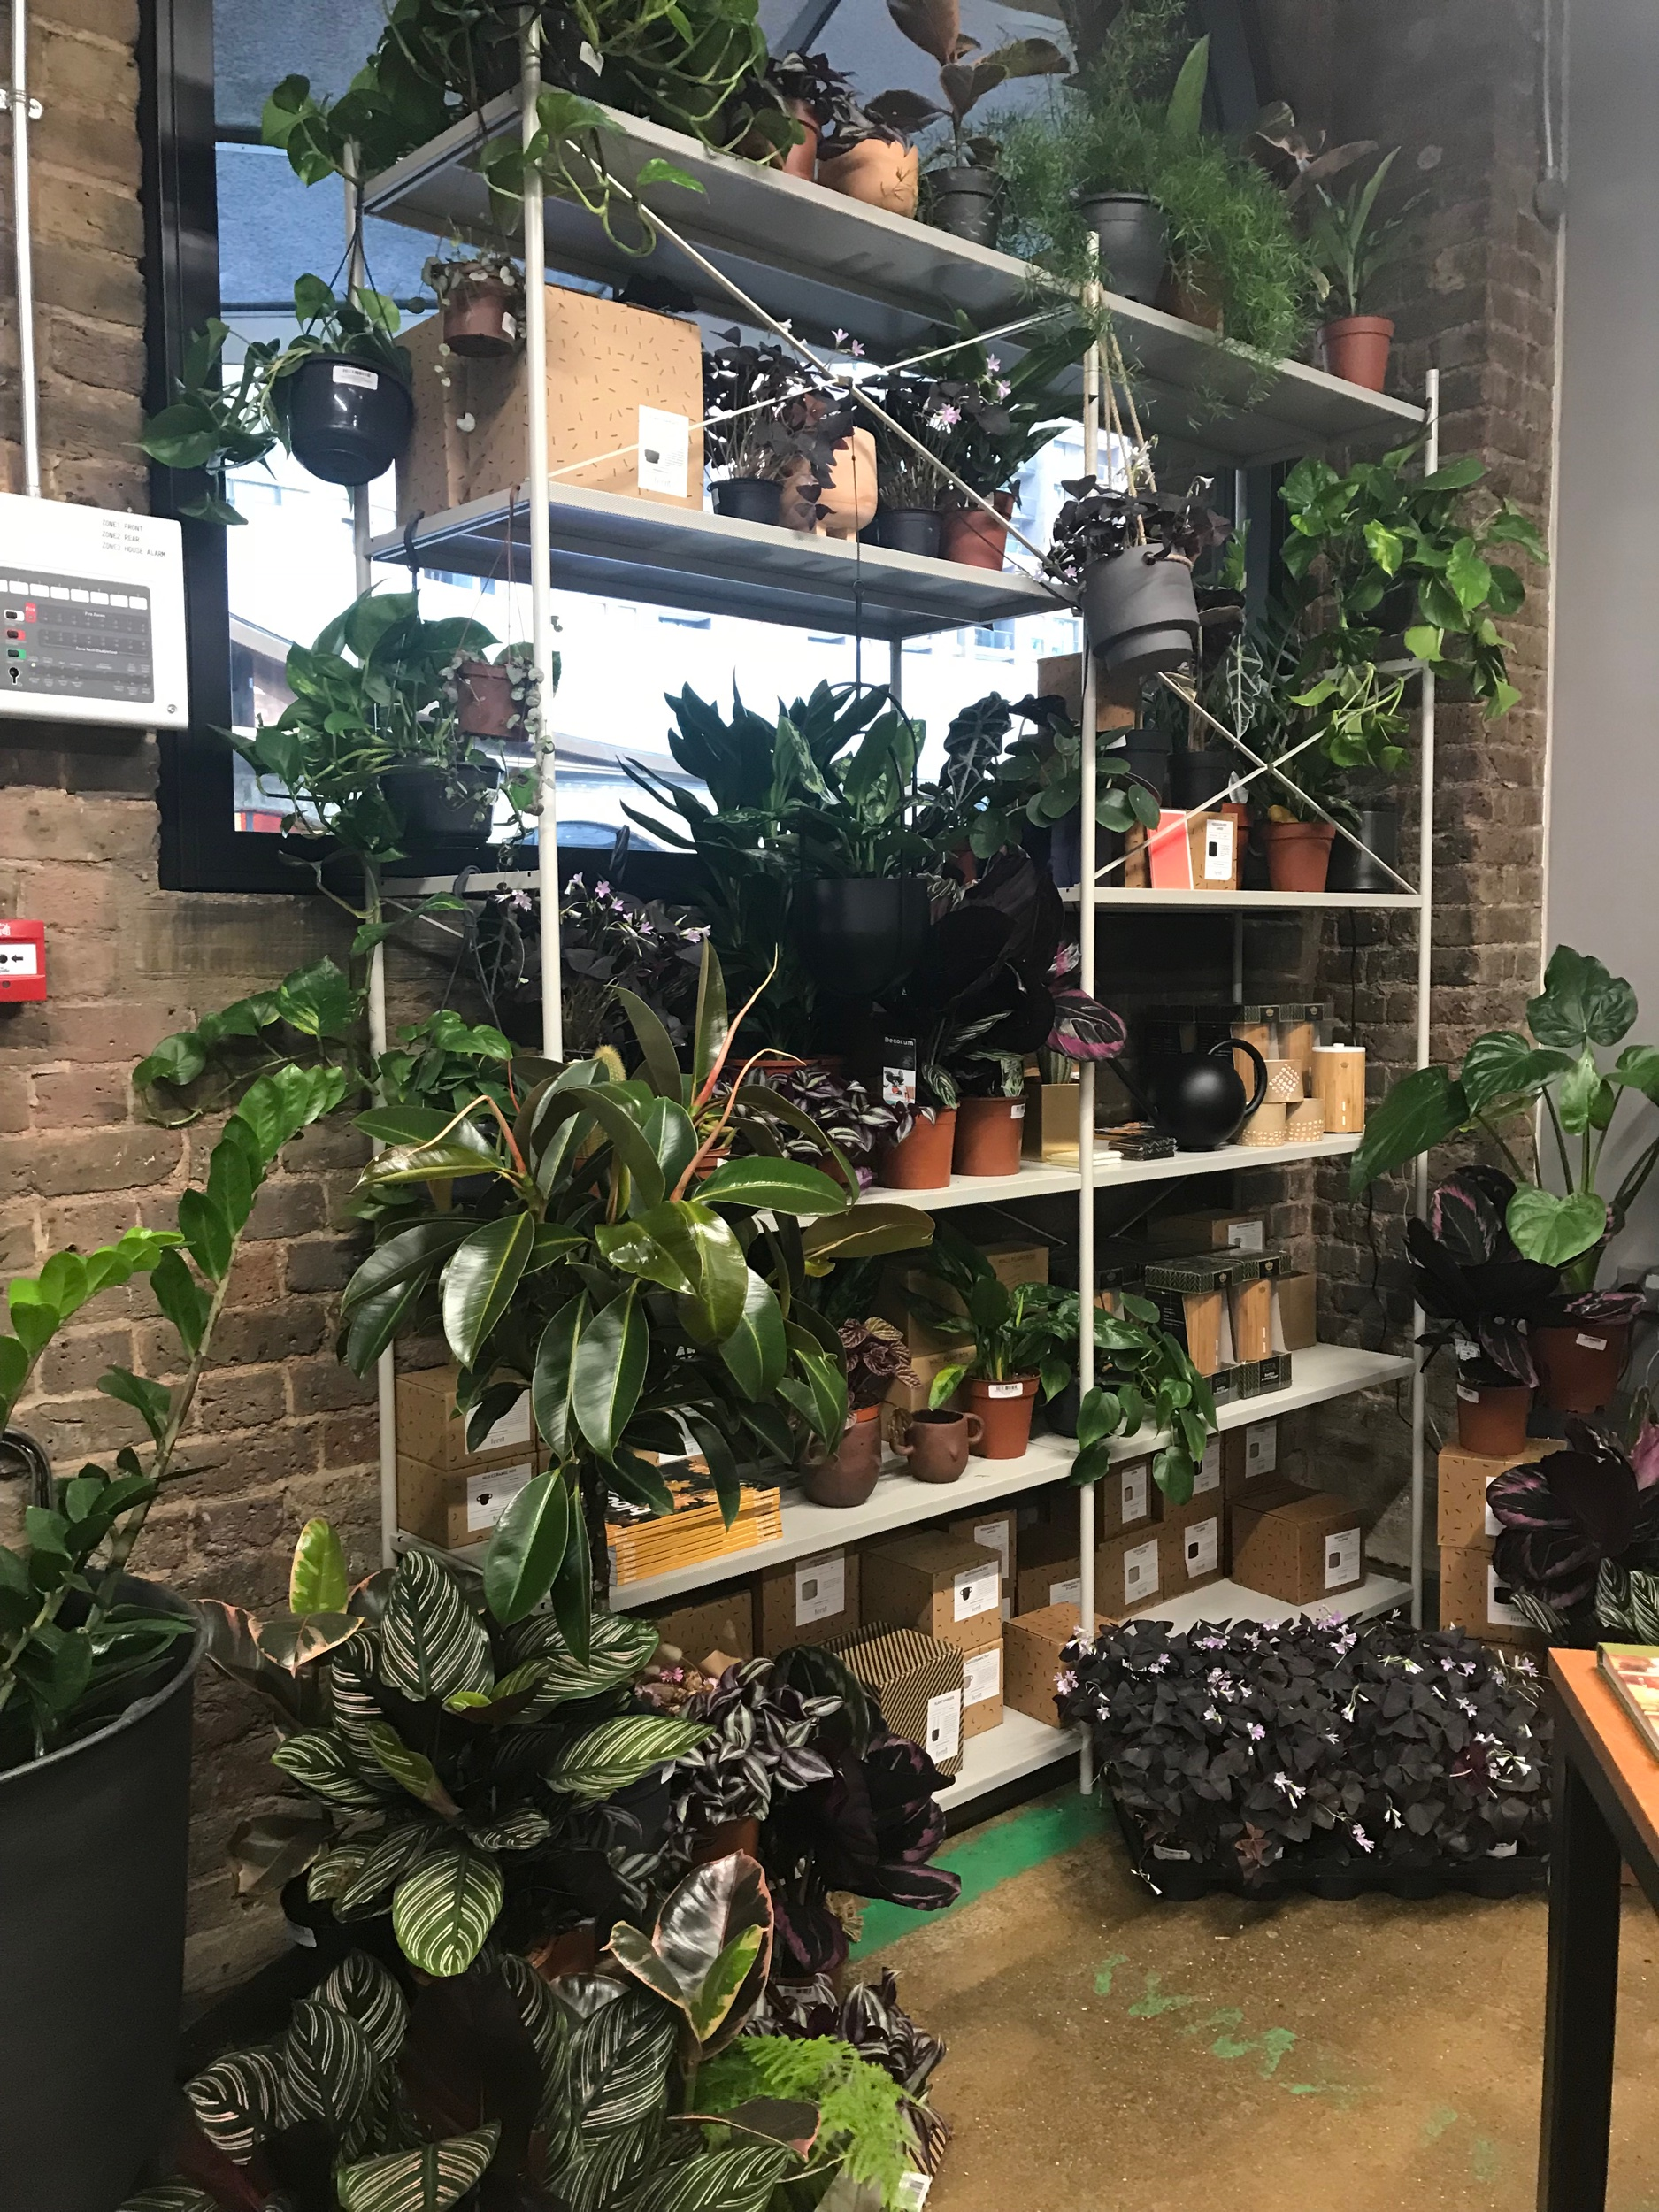 The East of London unit has a lovely collection of indoor plants to choose from with their handmade candles and home products available to buy.